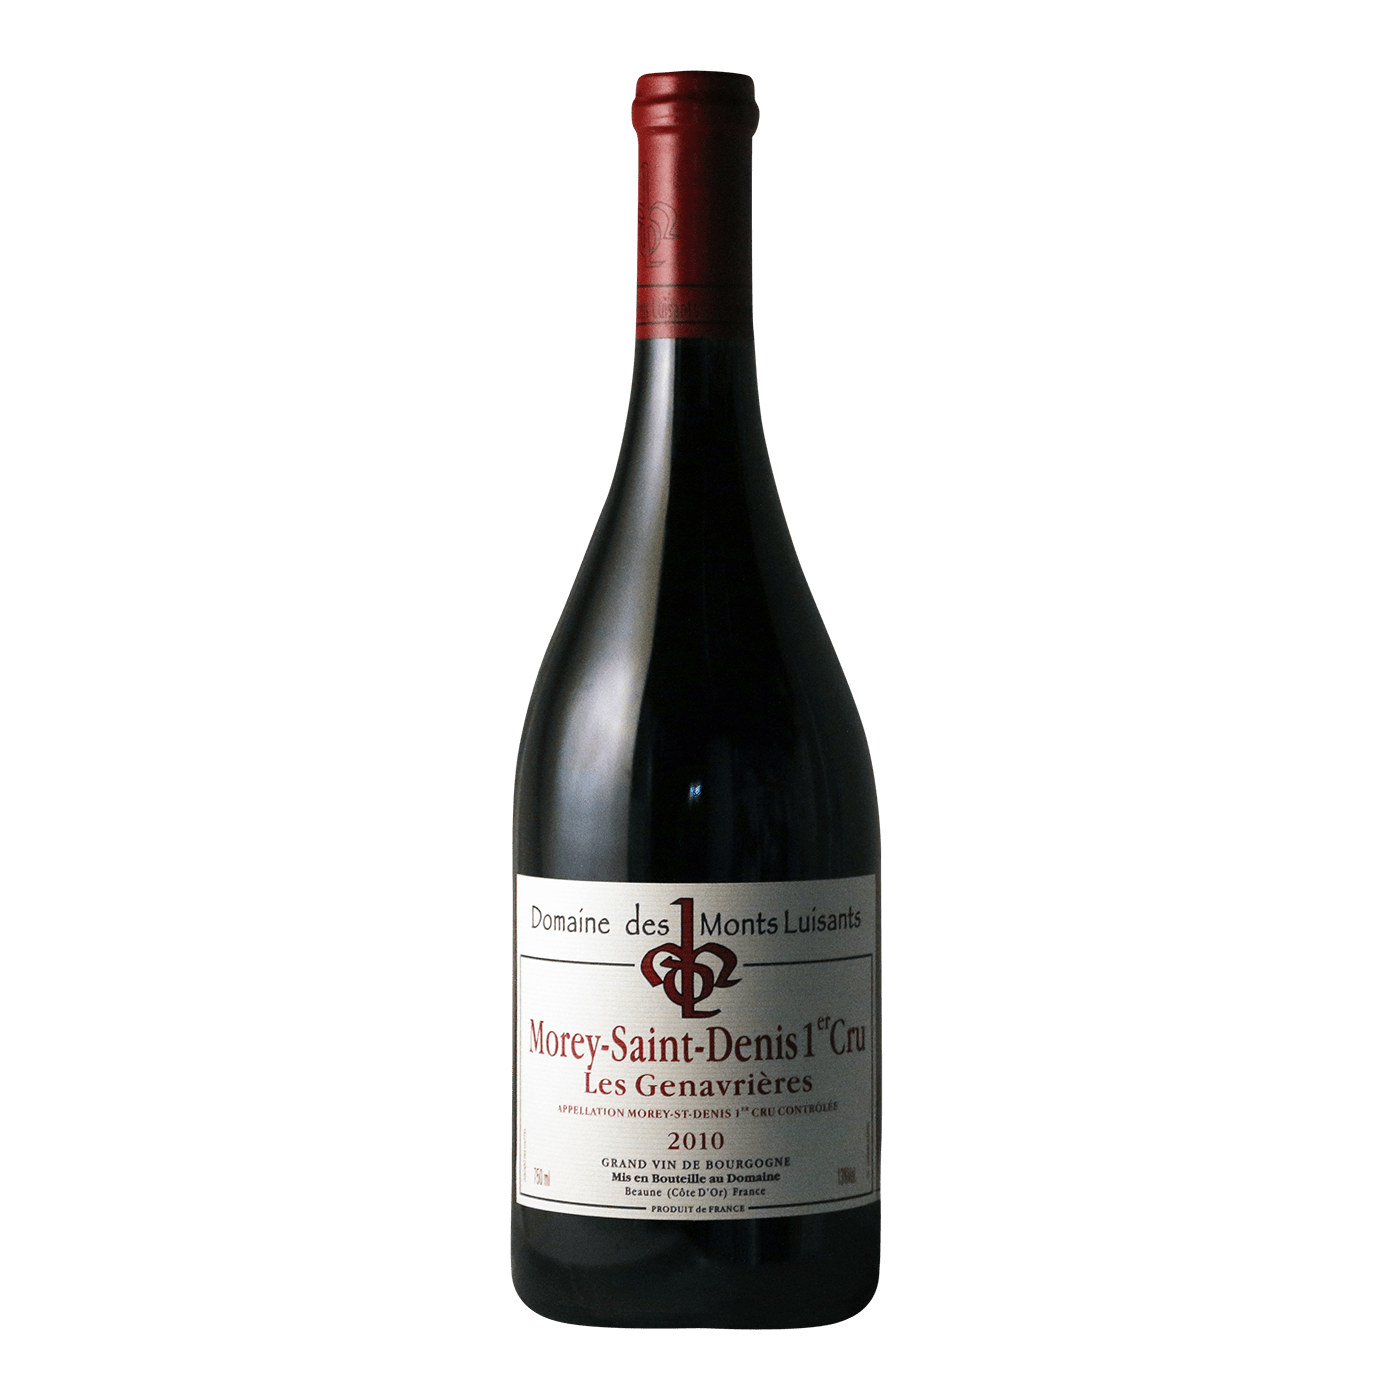 morey saint denis 1er cru les genavri res domaine des monts luisants 2010 lorentsens. Black Bedroom Furniture Sets. Home Design Ideas